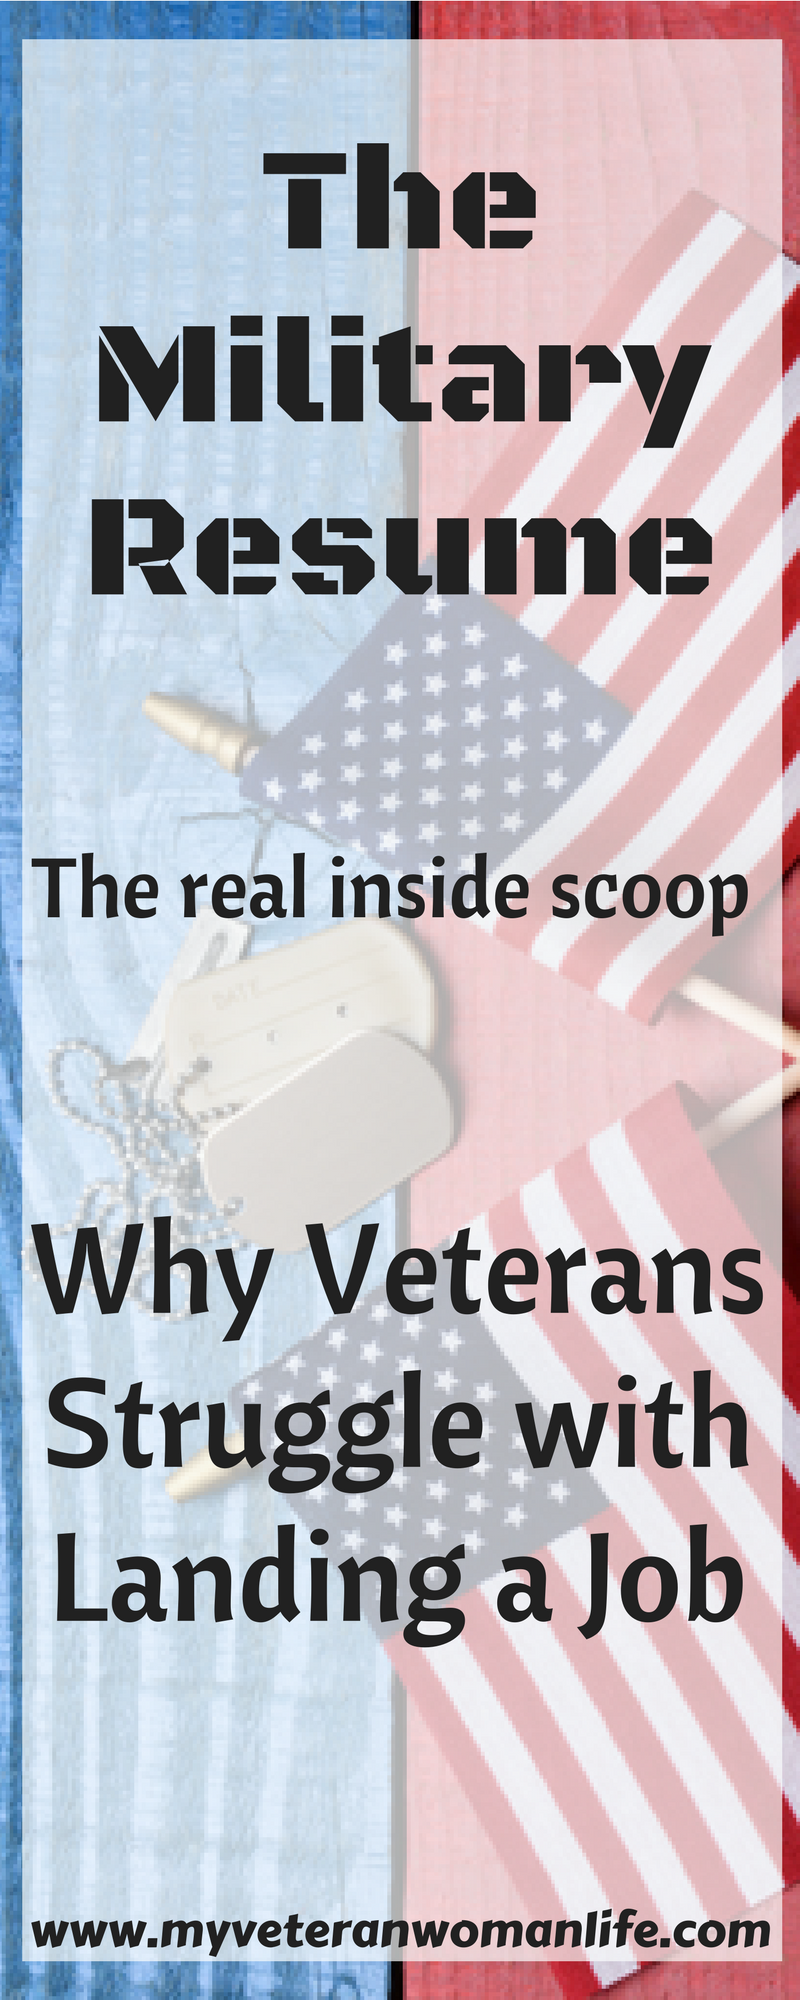 The Military Resume Why Veterans Struggle With Landing A Job